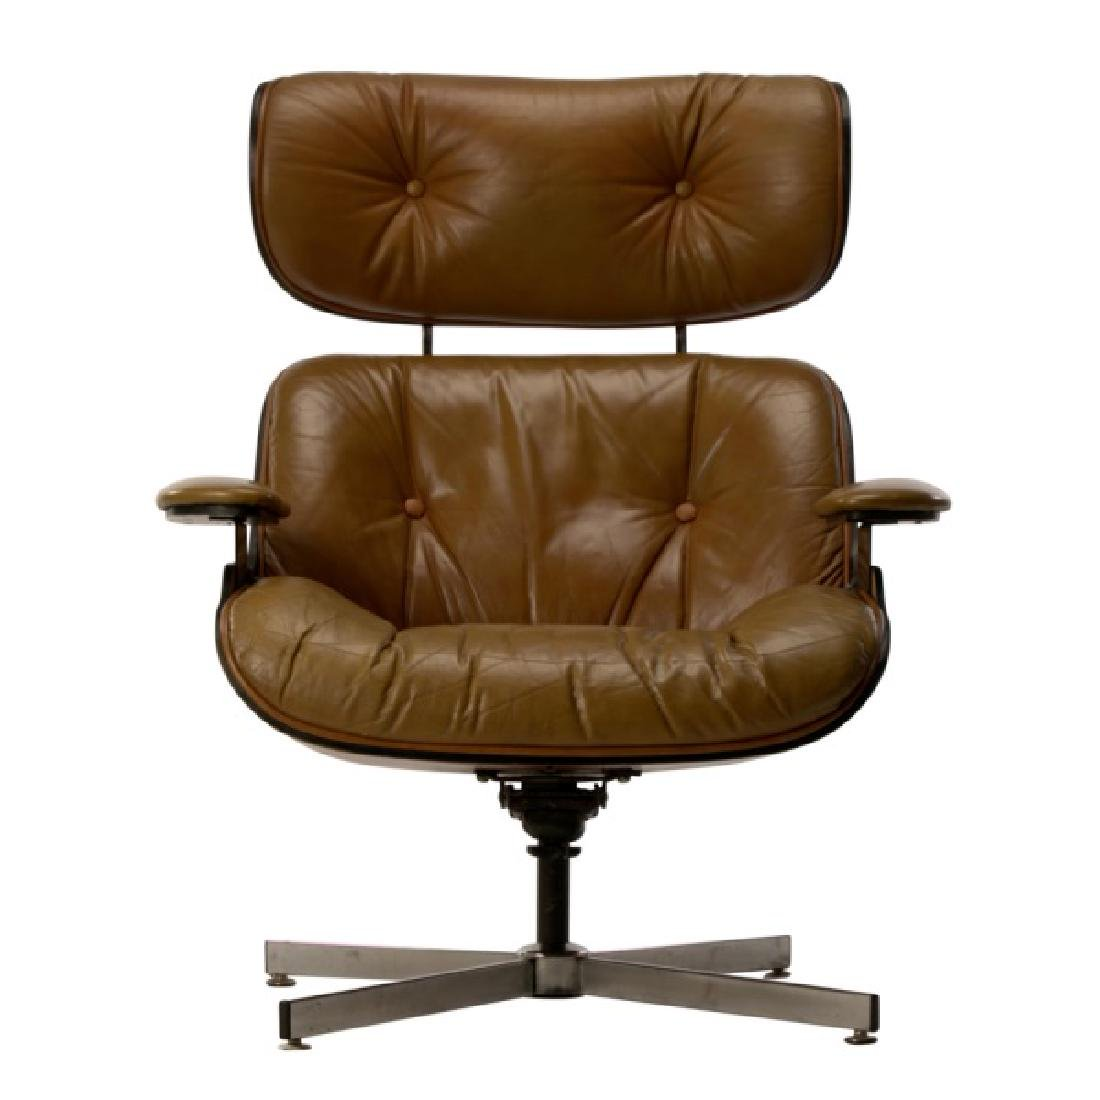 MCM Eames Style Rosewood Lounge Chair